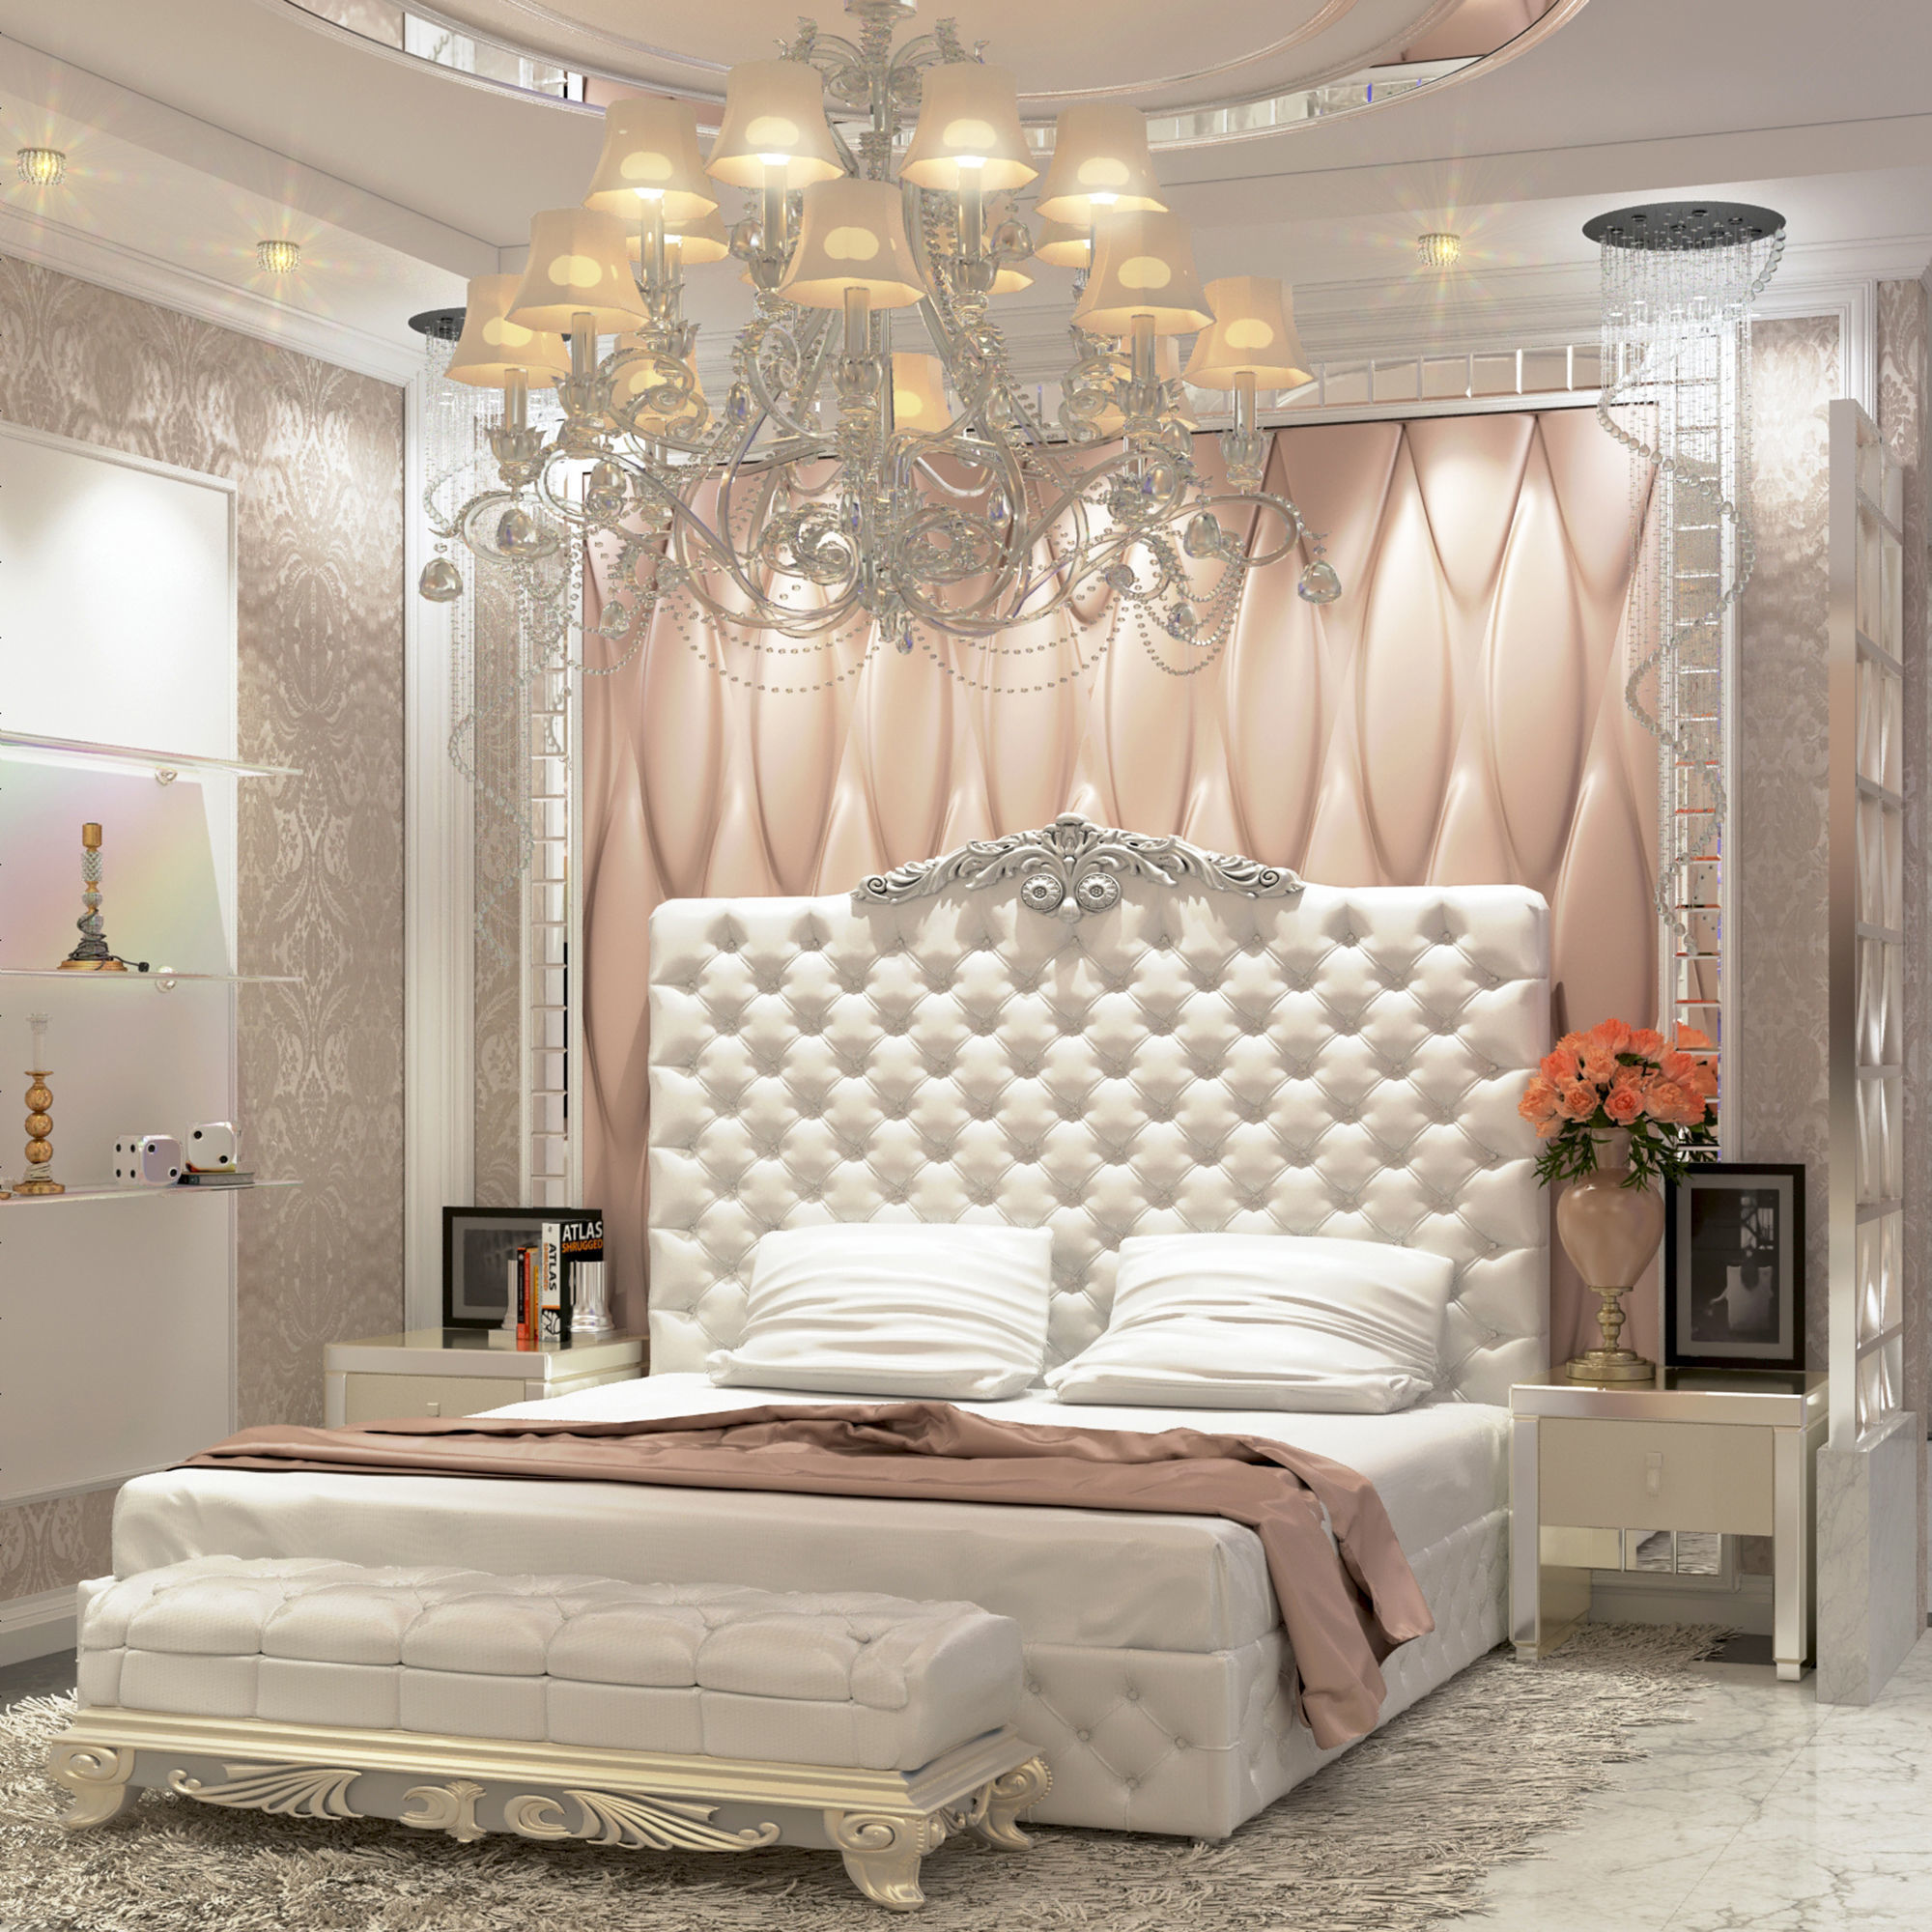 Modern Luxury bedroom and dressing room 3D model